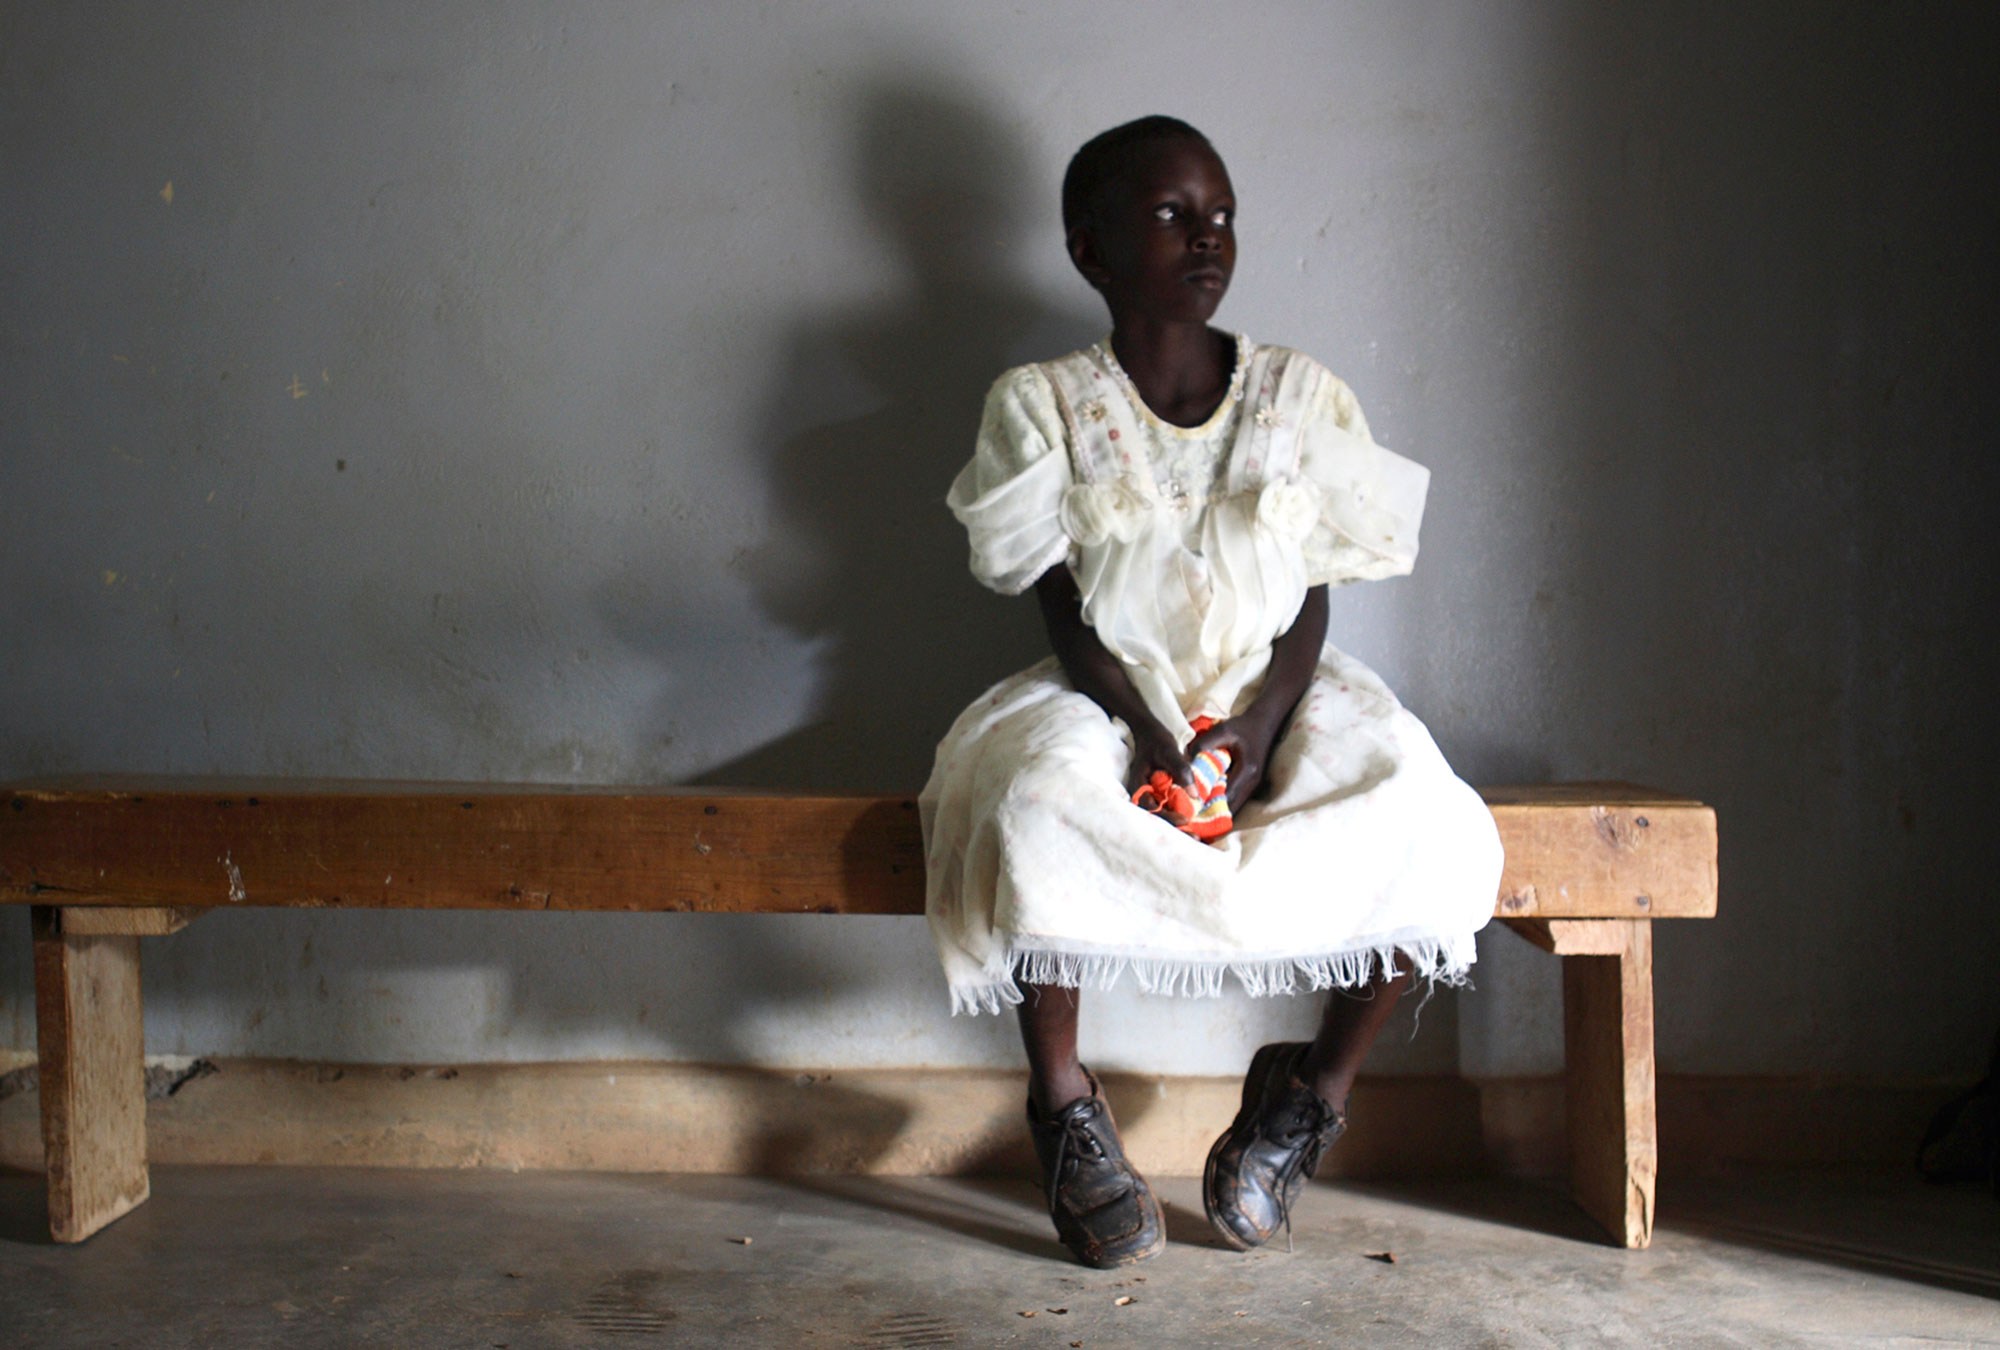 A young girl waits in a health center in Uganda.